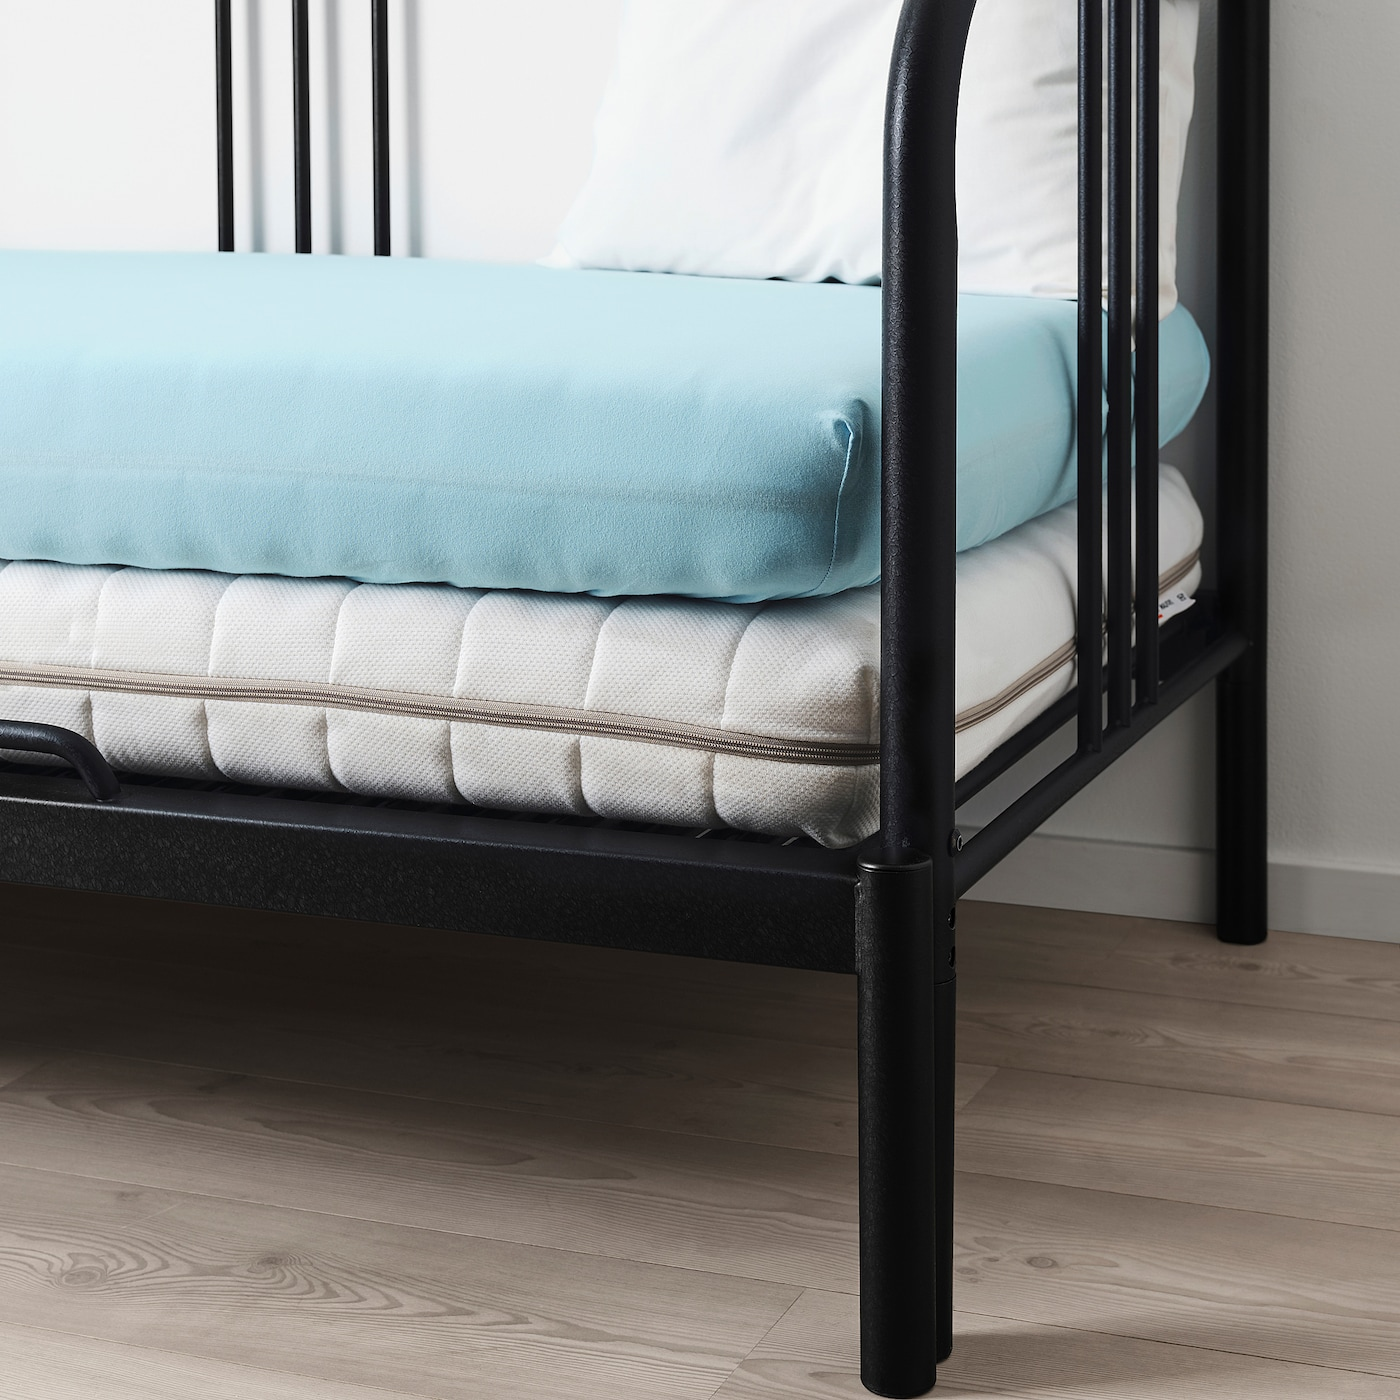 https://www.ikea.com/fr/fr/images/products/varvial-fitted-sheet-for-day-bed-light-blue__0755291_PE748341_S5.JPG